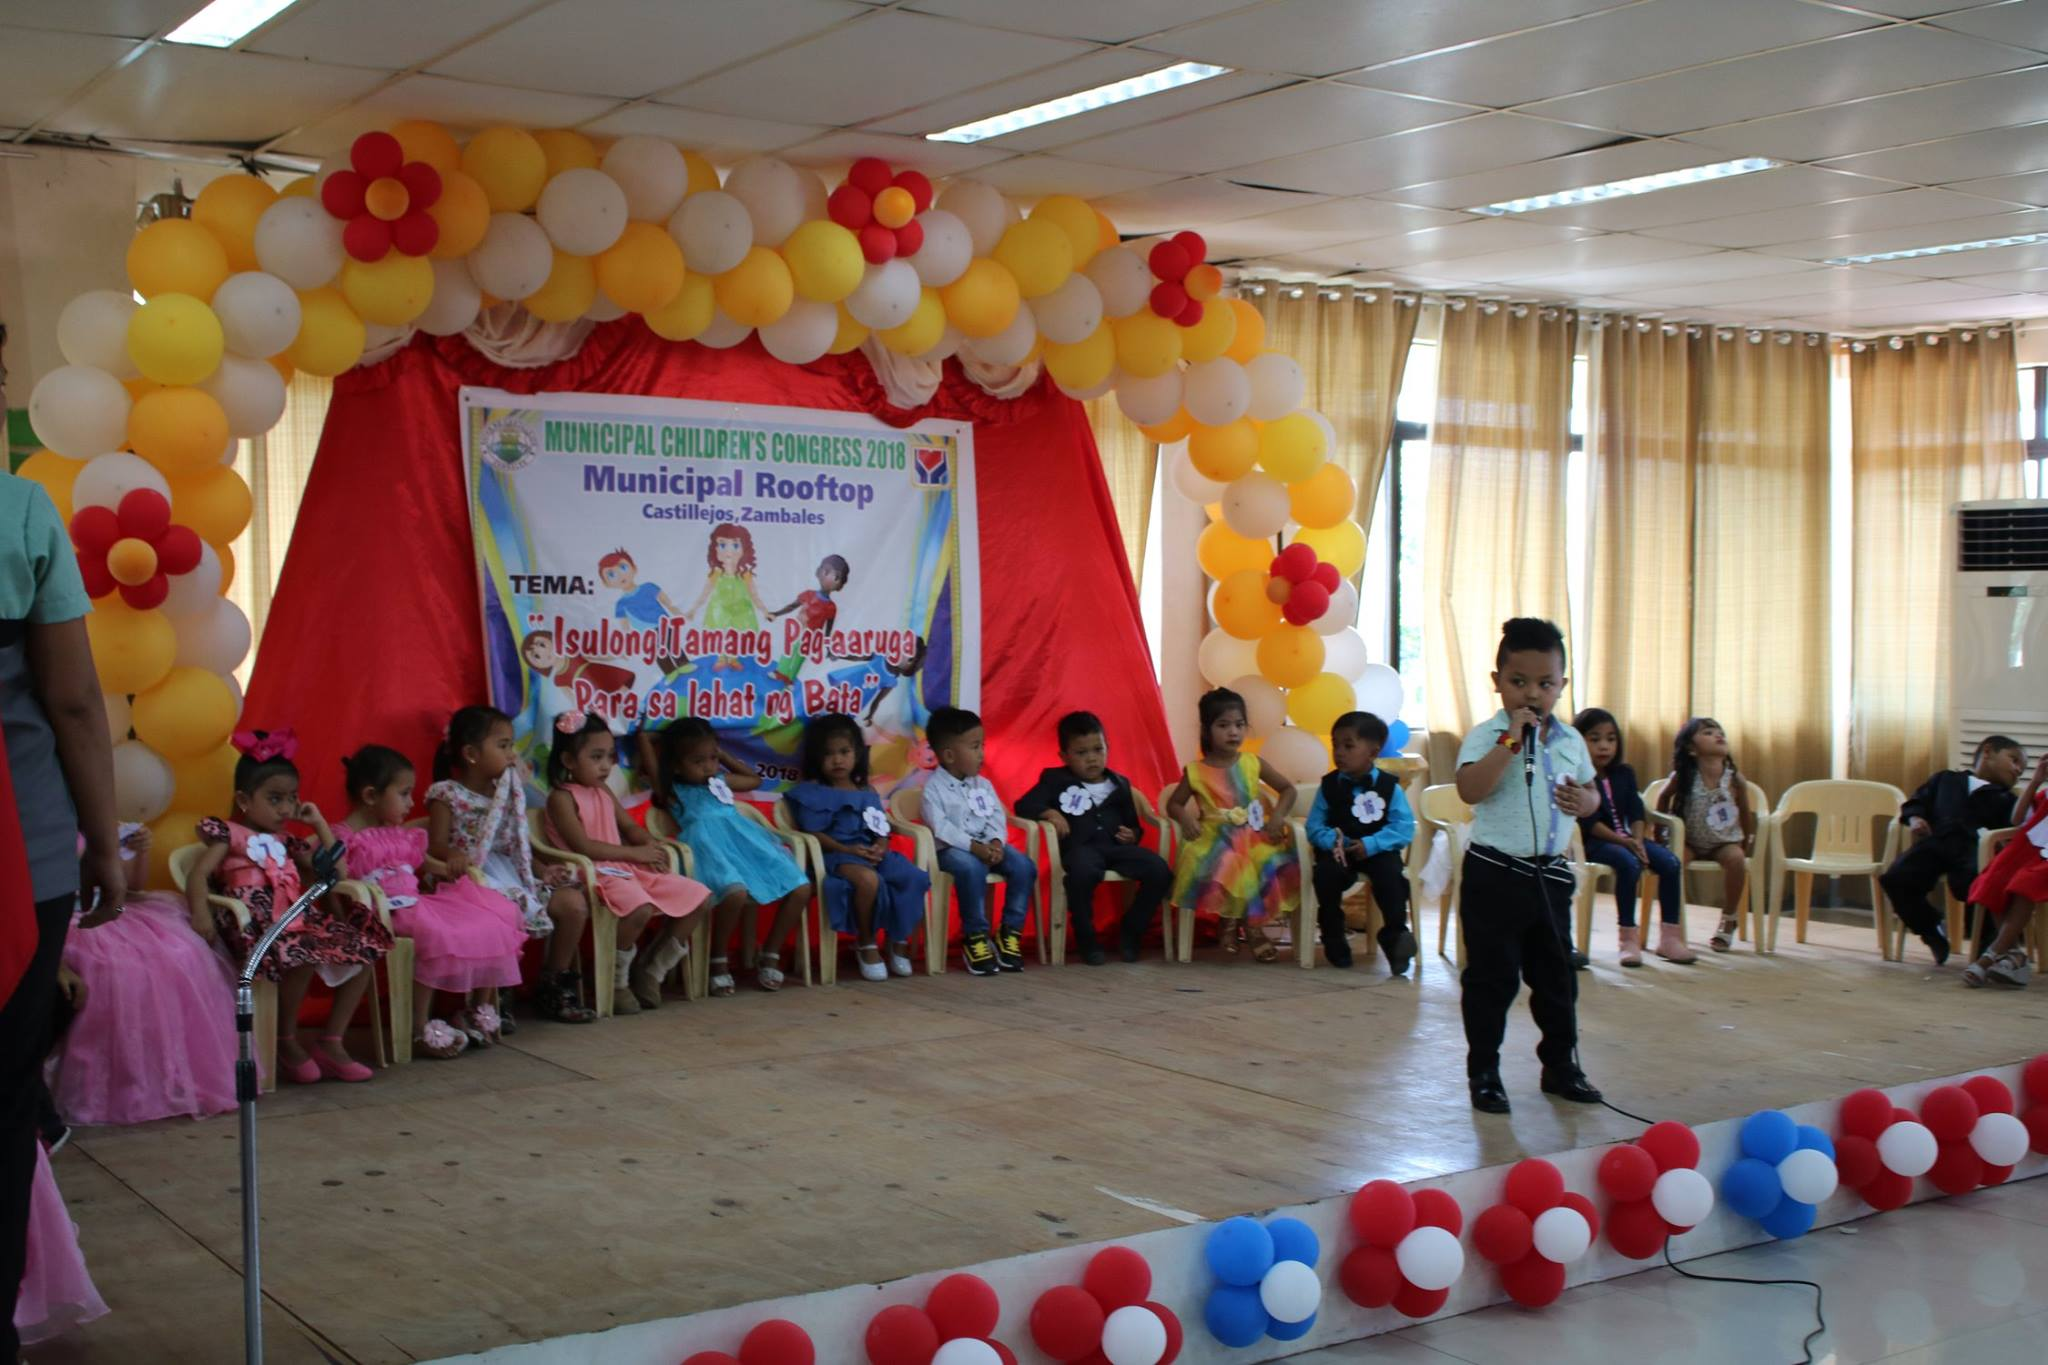 Municipal Children's Congress 2018